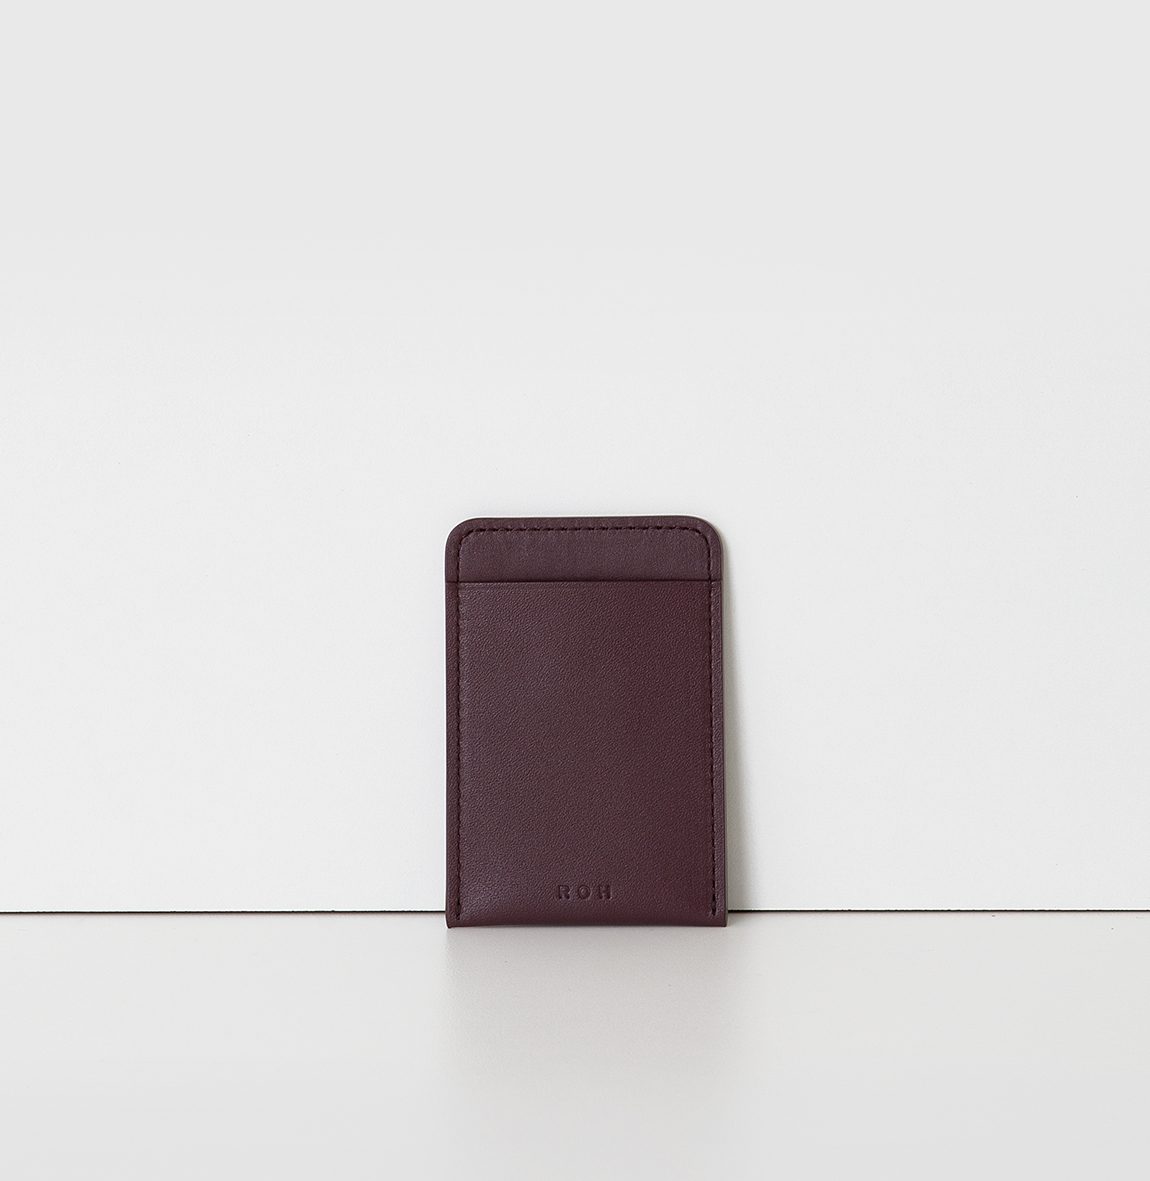 Card Wallet Objet 1 Burgundy